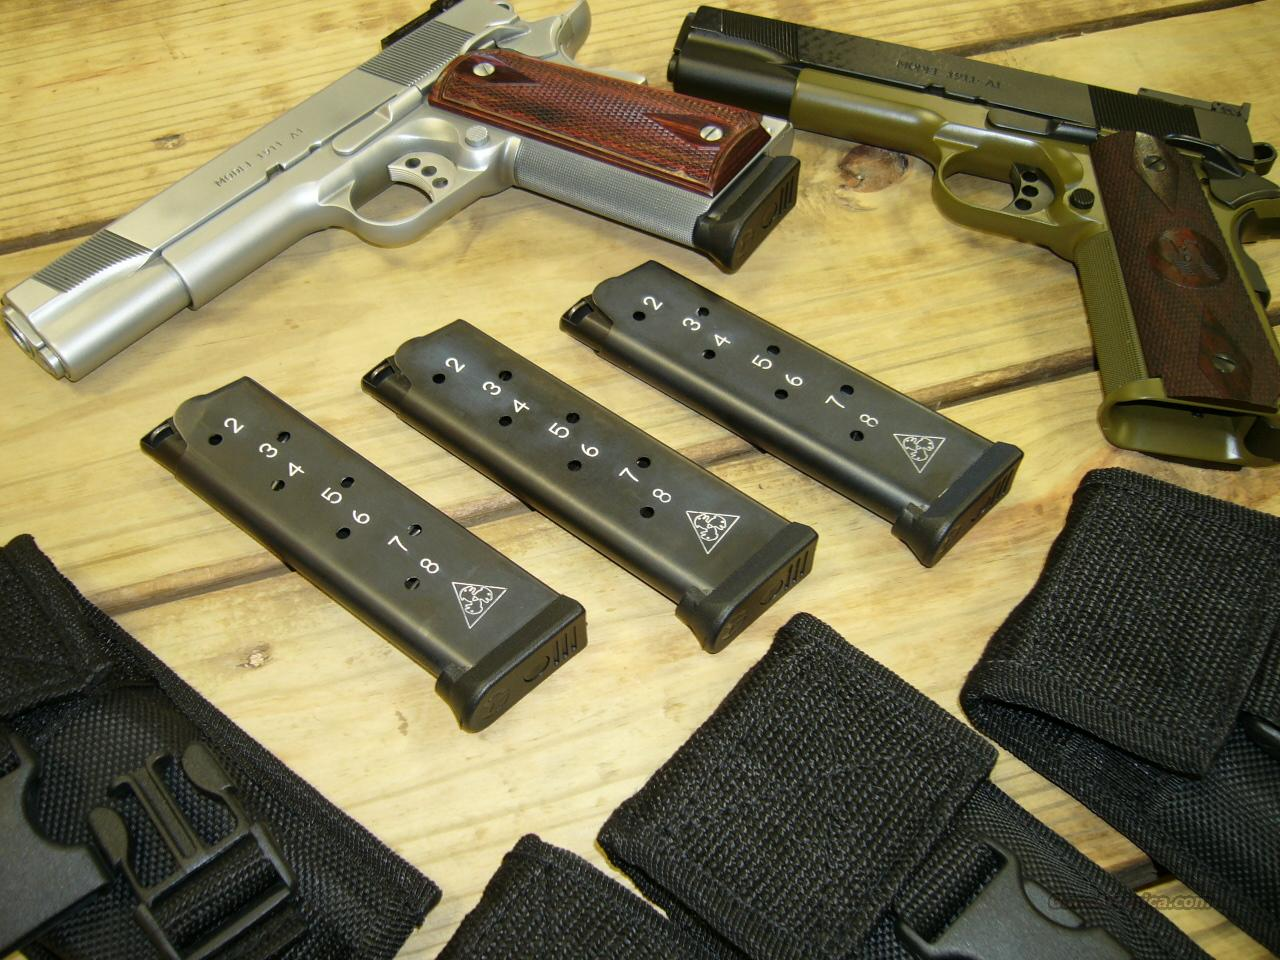 ROCK RIVER ARMS   Guns > Pistols > Rock River Arms Pistols